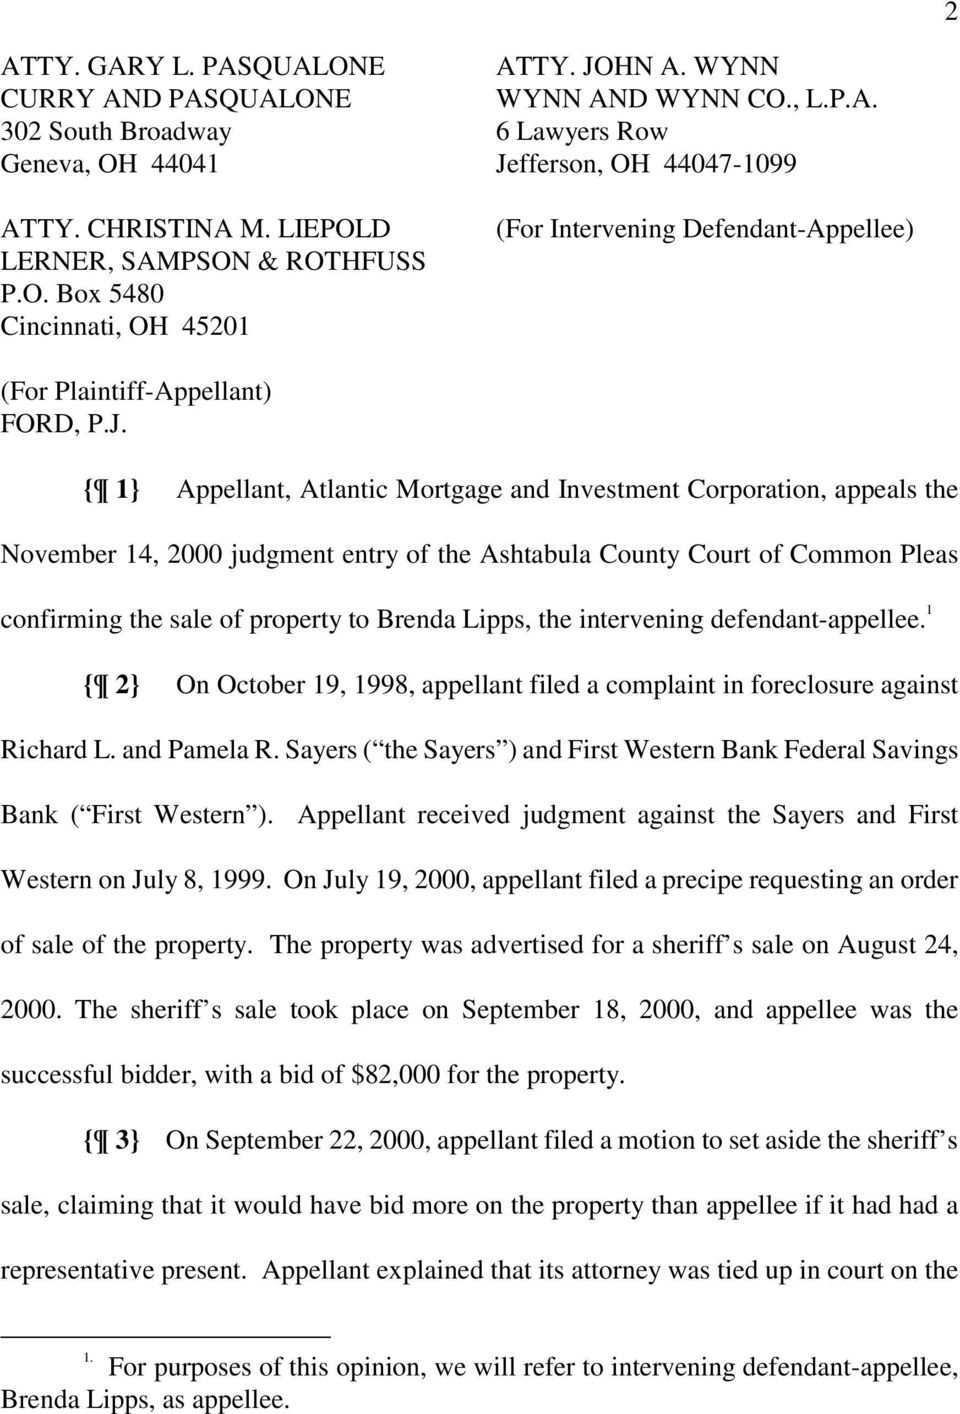 fferson, OH 44047-1099 (For Intervening Defendant-Appellee) (For Plaintiff-Appellant) FORD, P.J.